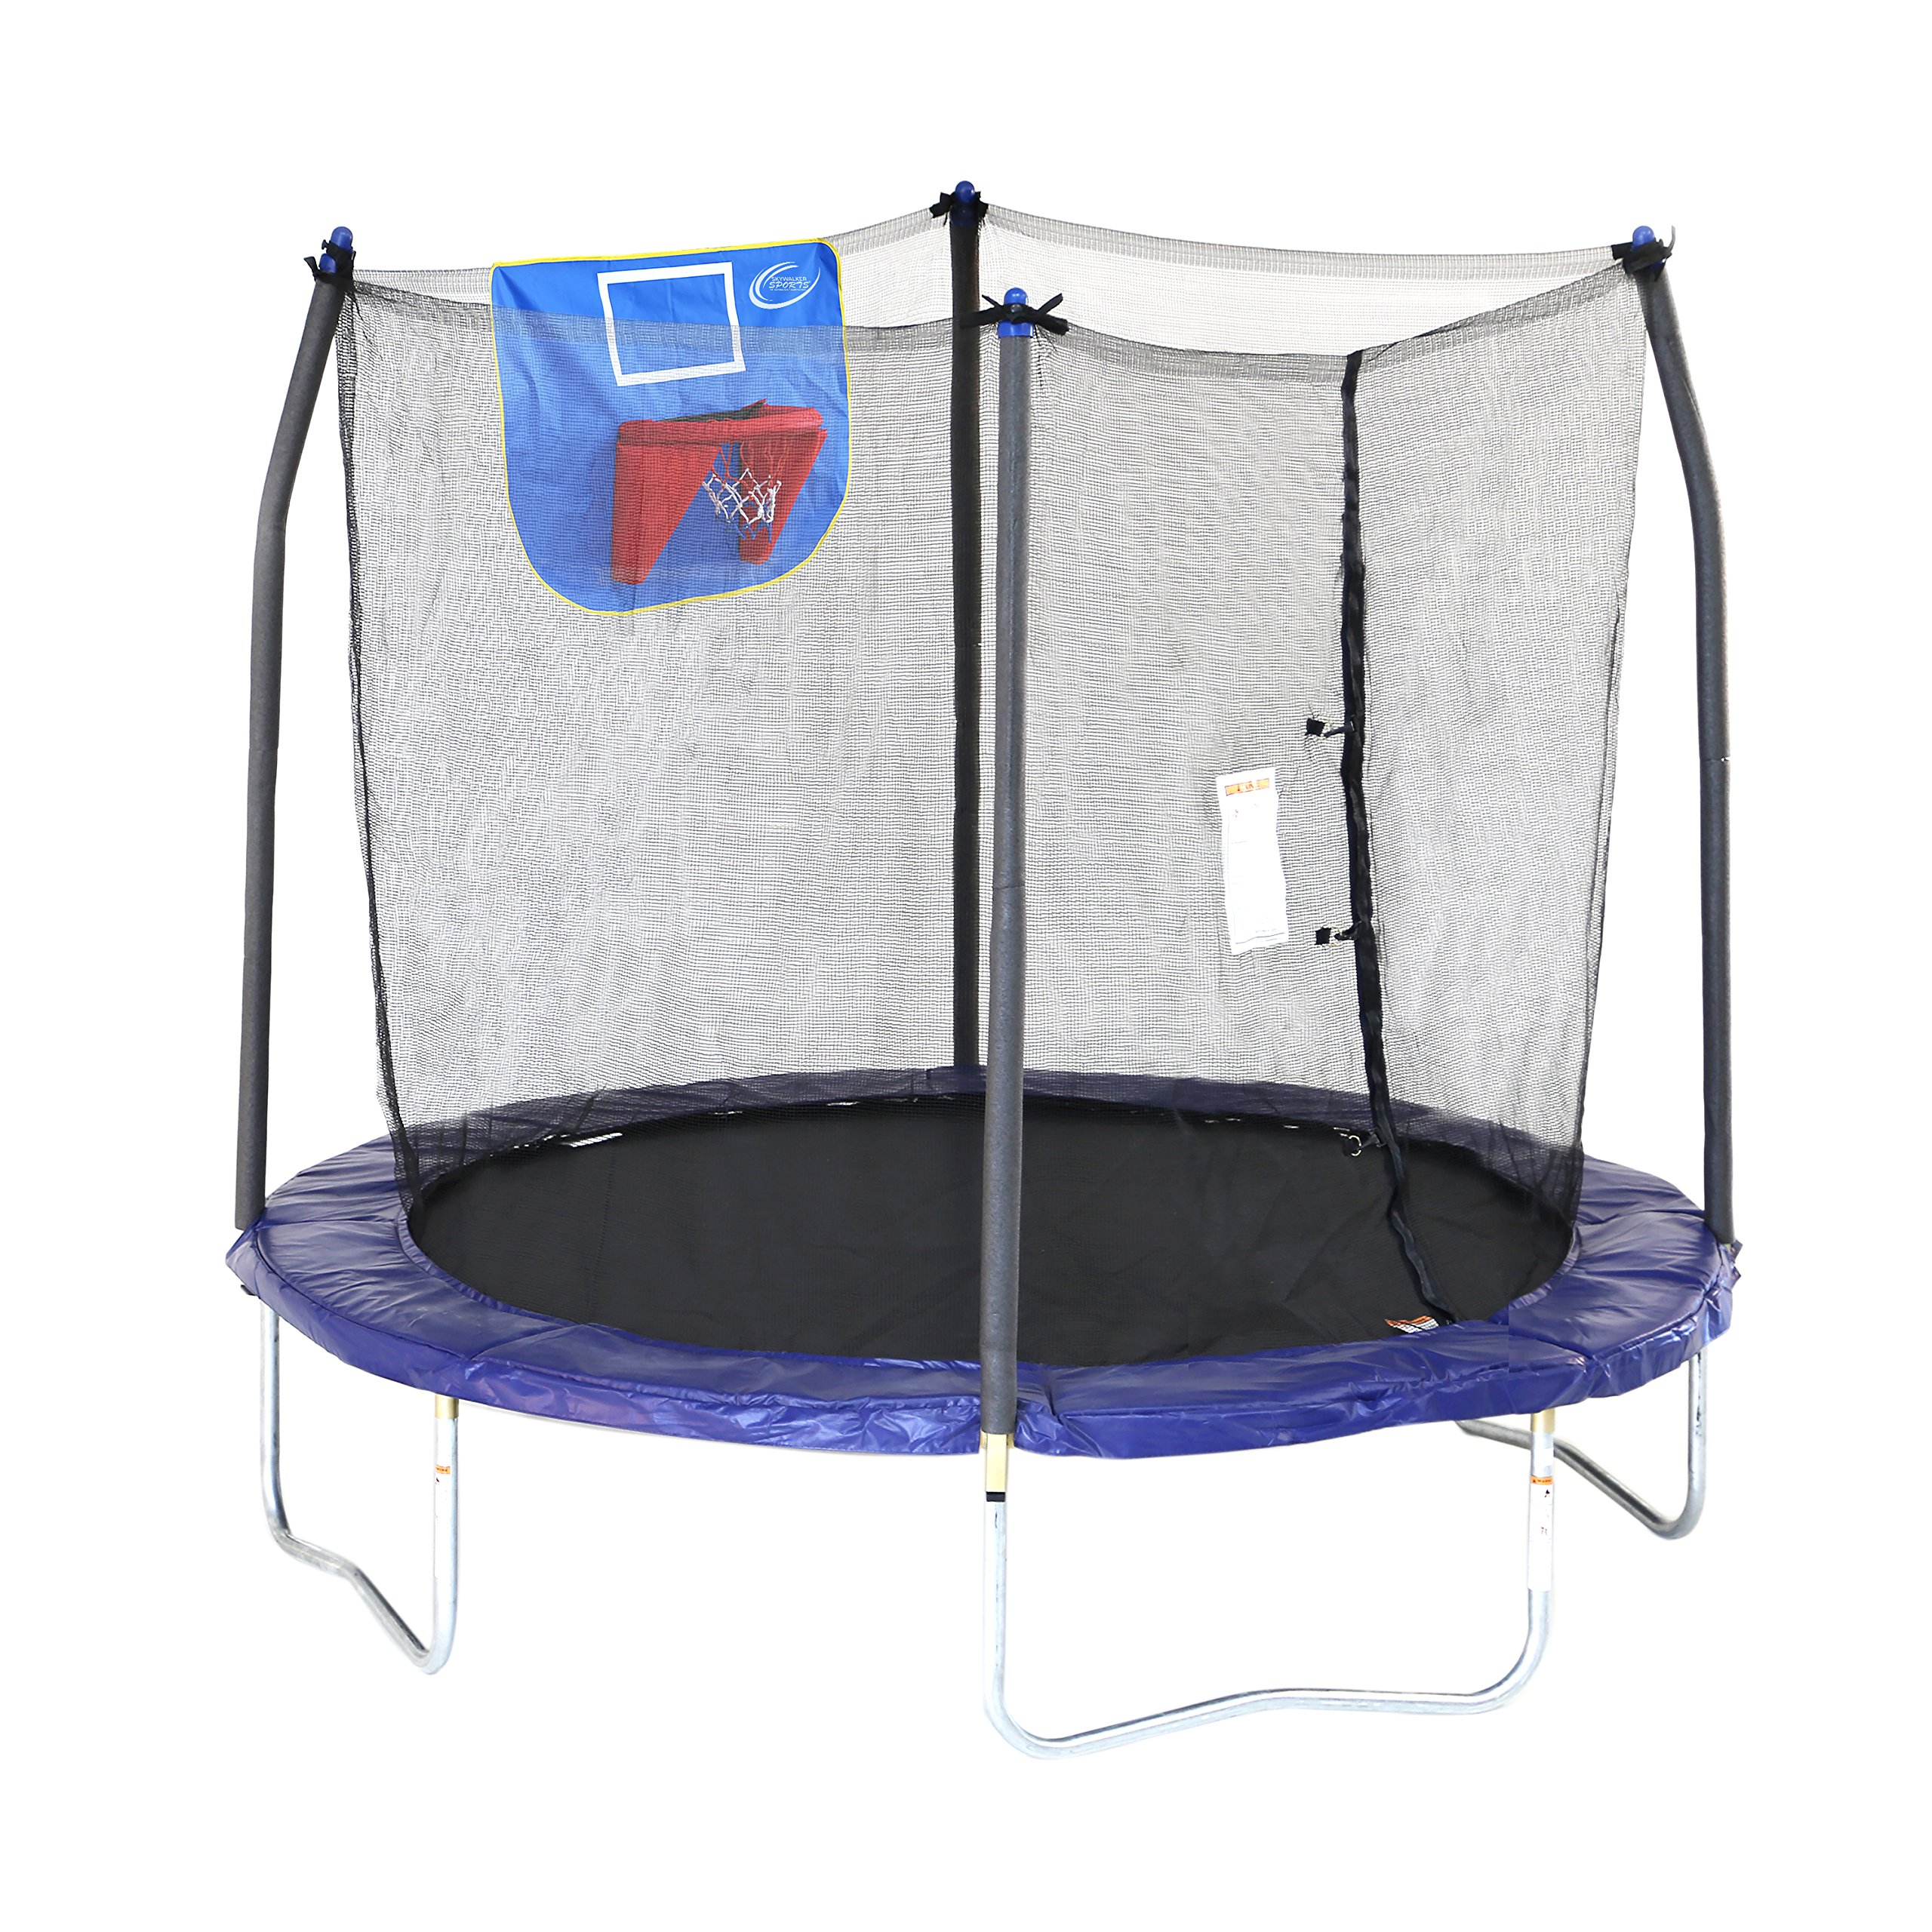 Skywalker Trampolines Jump N' Dunk Trampoline with Safety Enclosure and Basketball Hoop, Blue, 8-Feet by Skywalker Trampolines